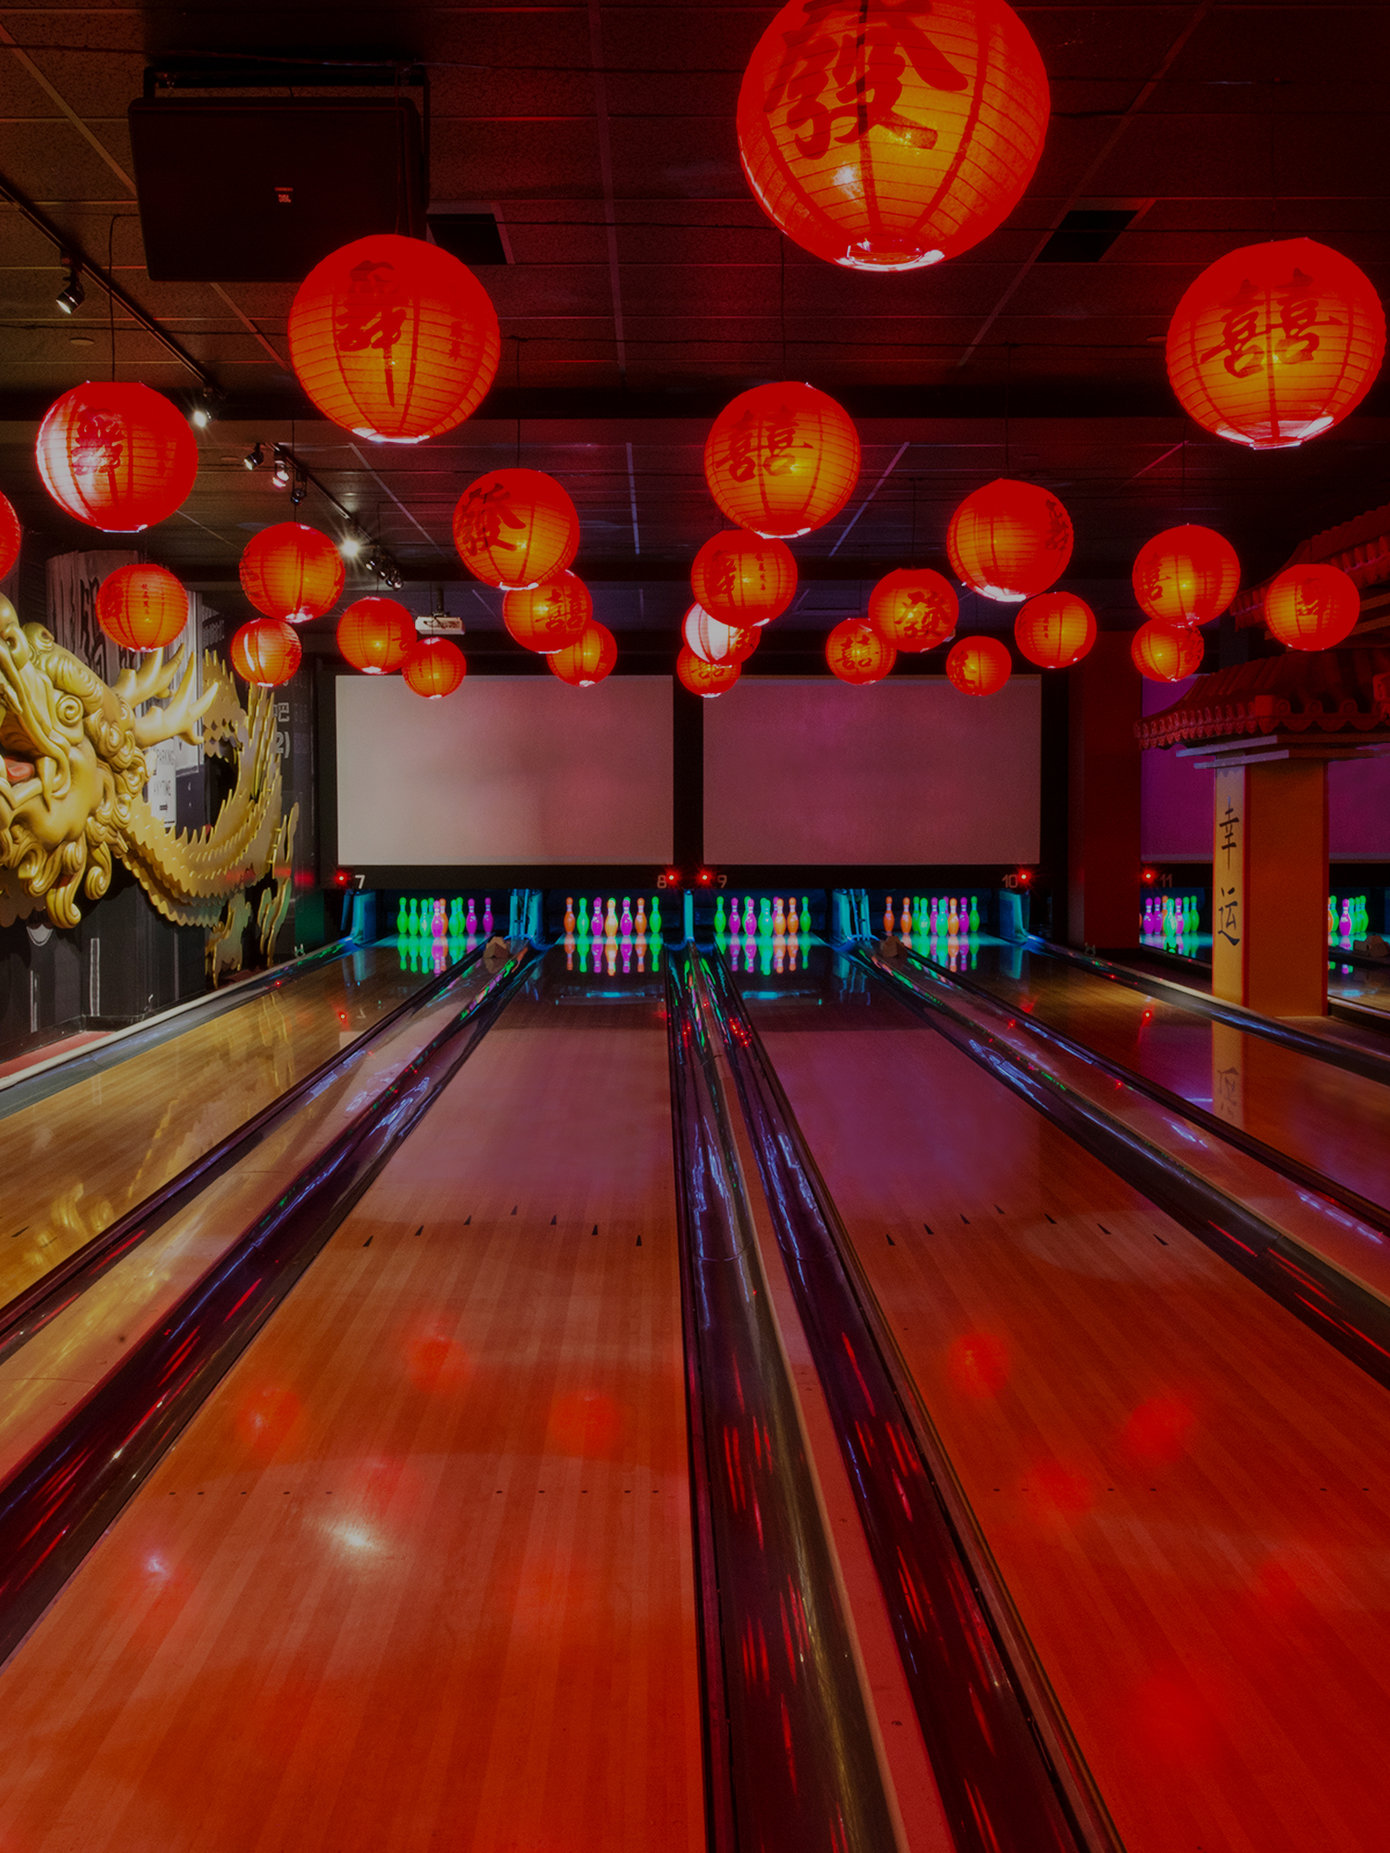 chinatown-inspired bowling lanes